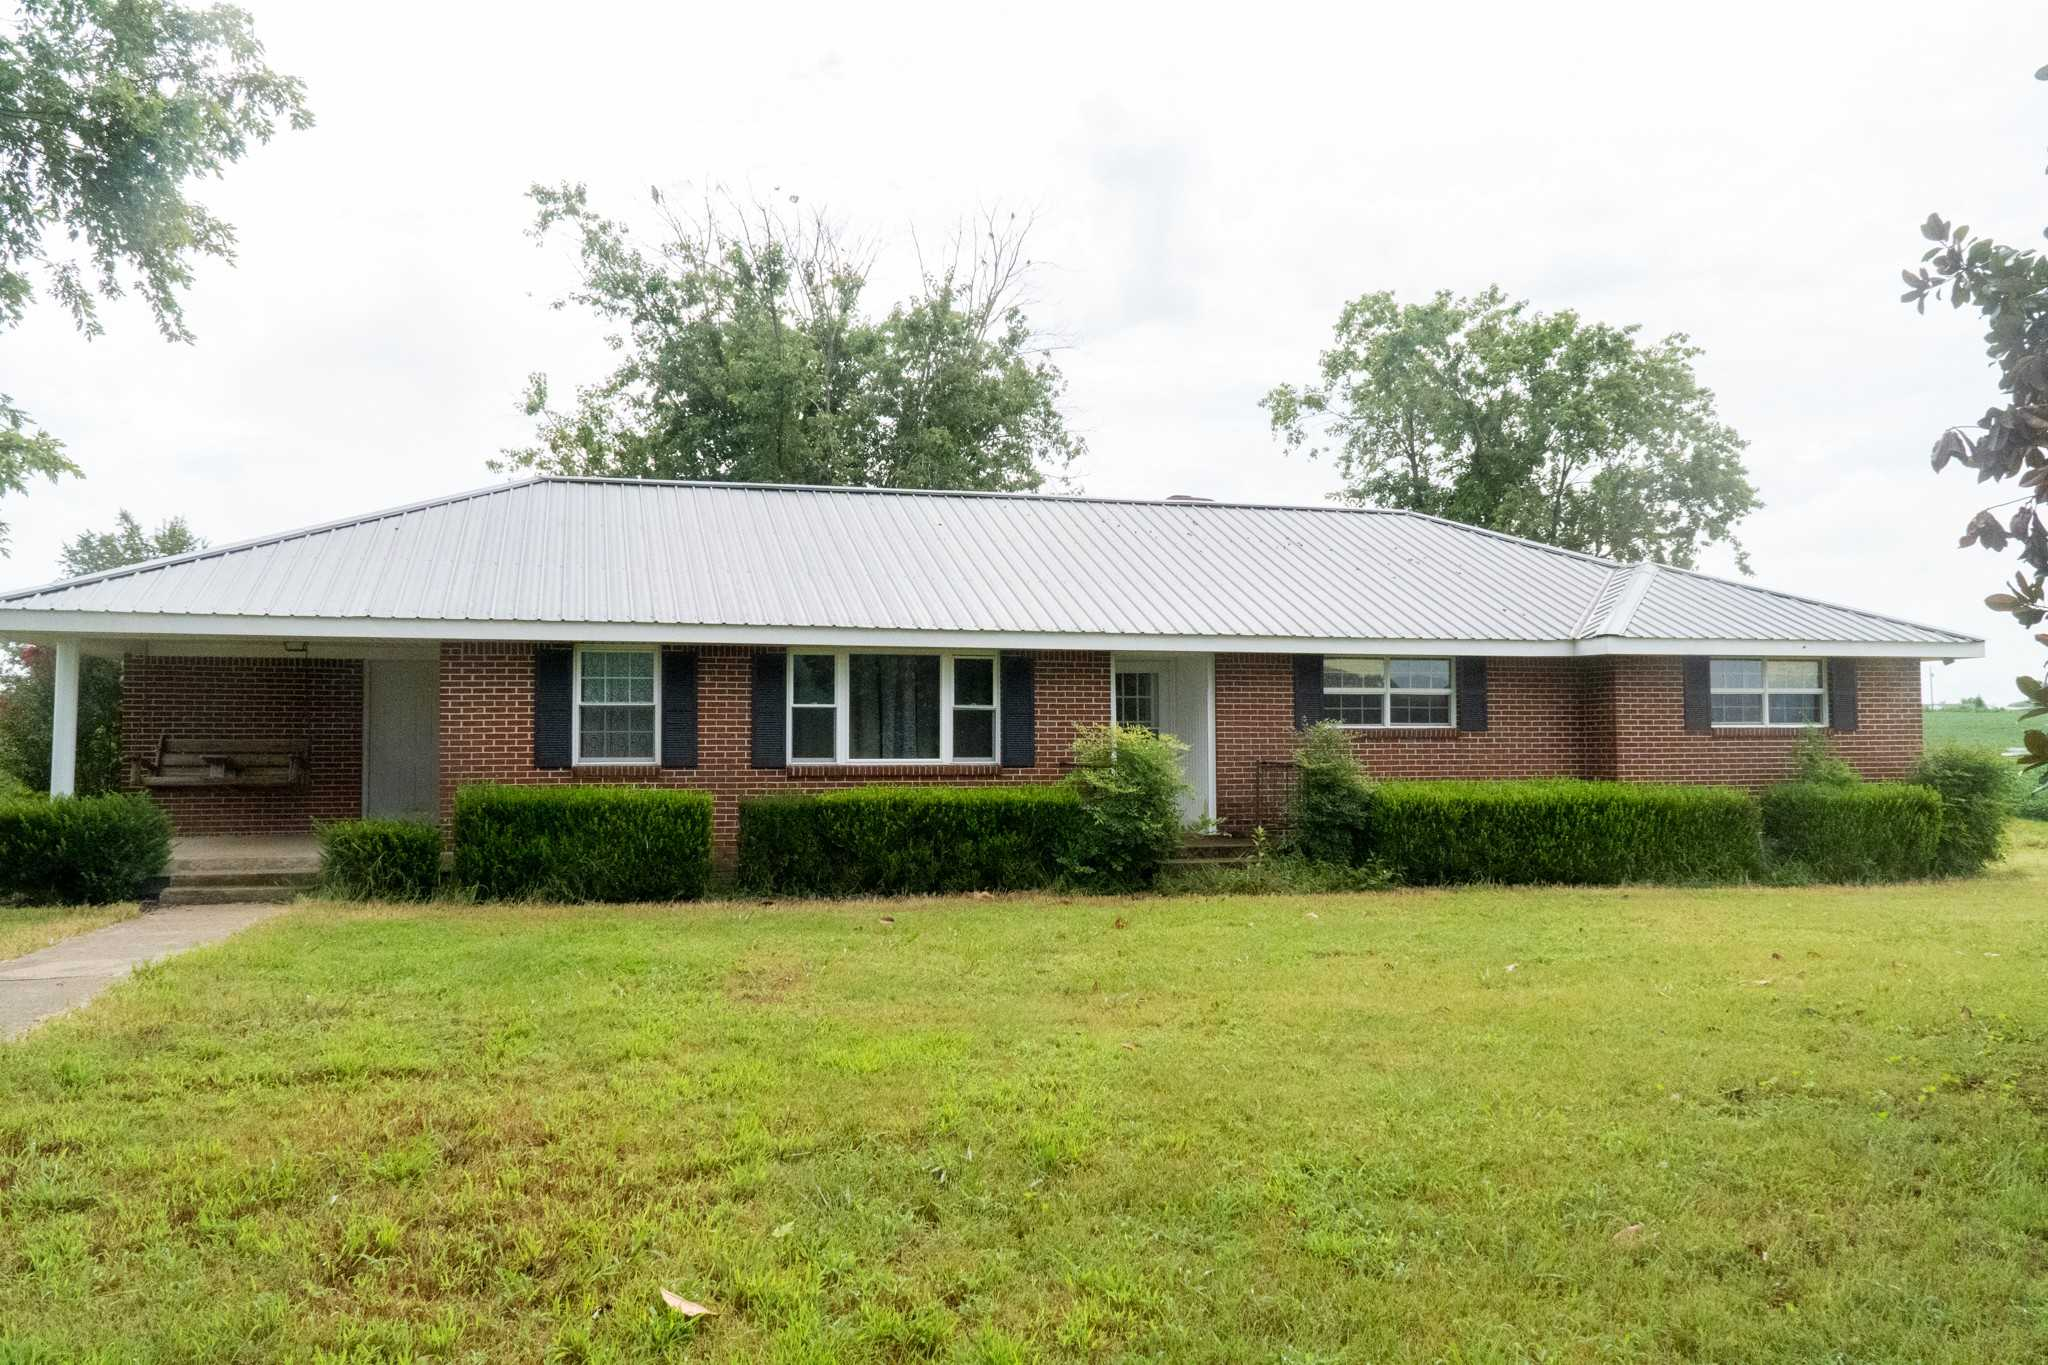 $3,125,000 - 3Br/2Ba -  for Sale in Helm Property, Lebanon